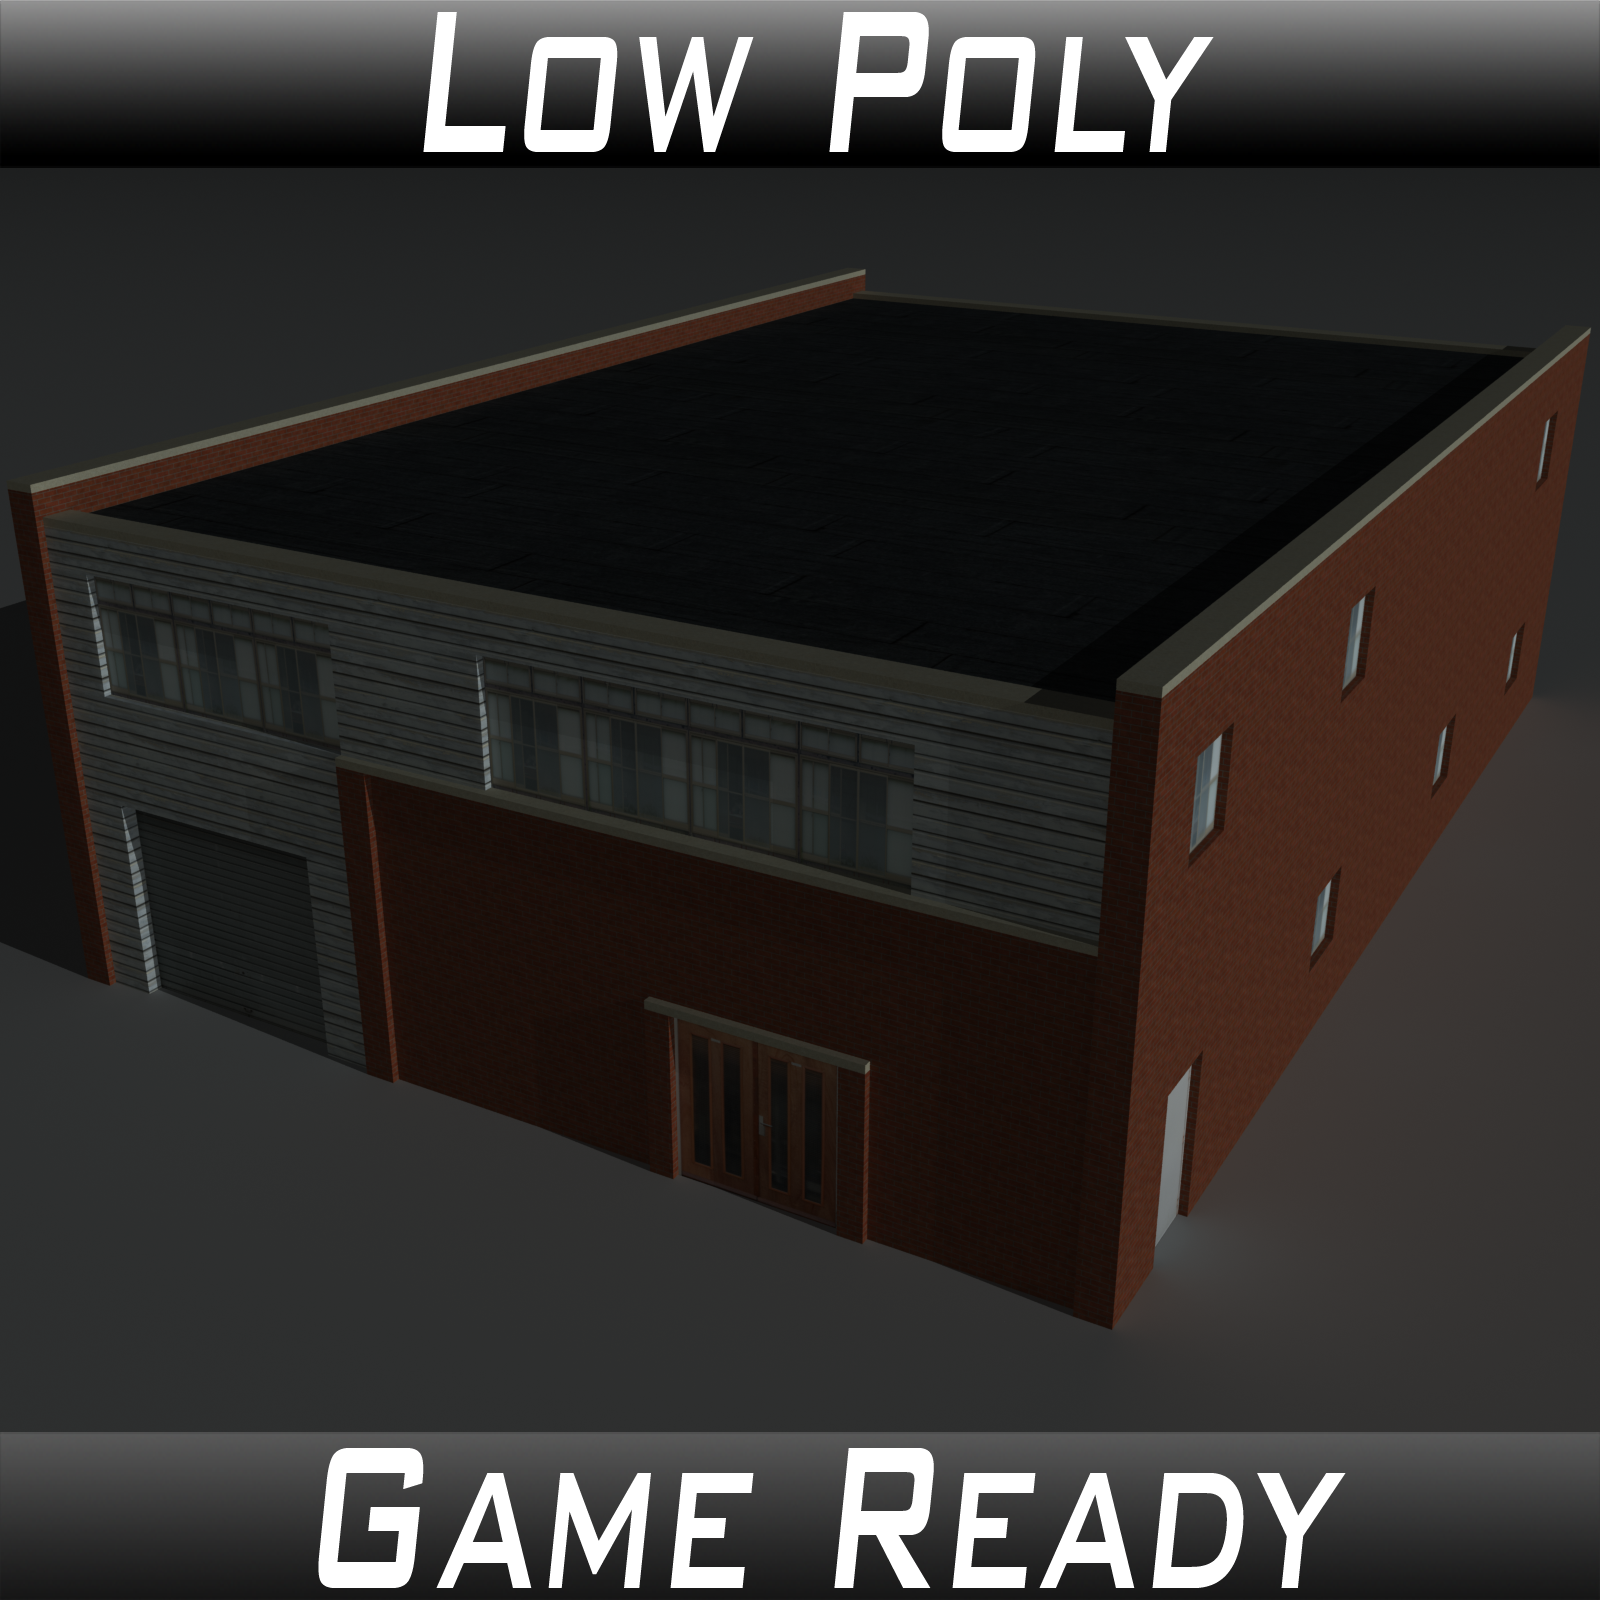 Low Poly Factory Building 27 - Extended Licence by 3dlands